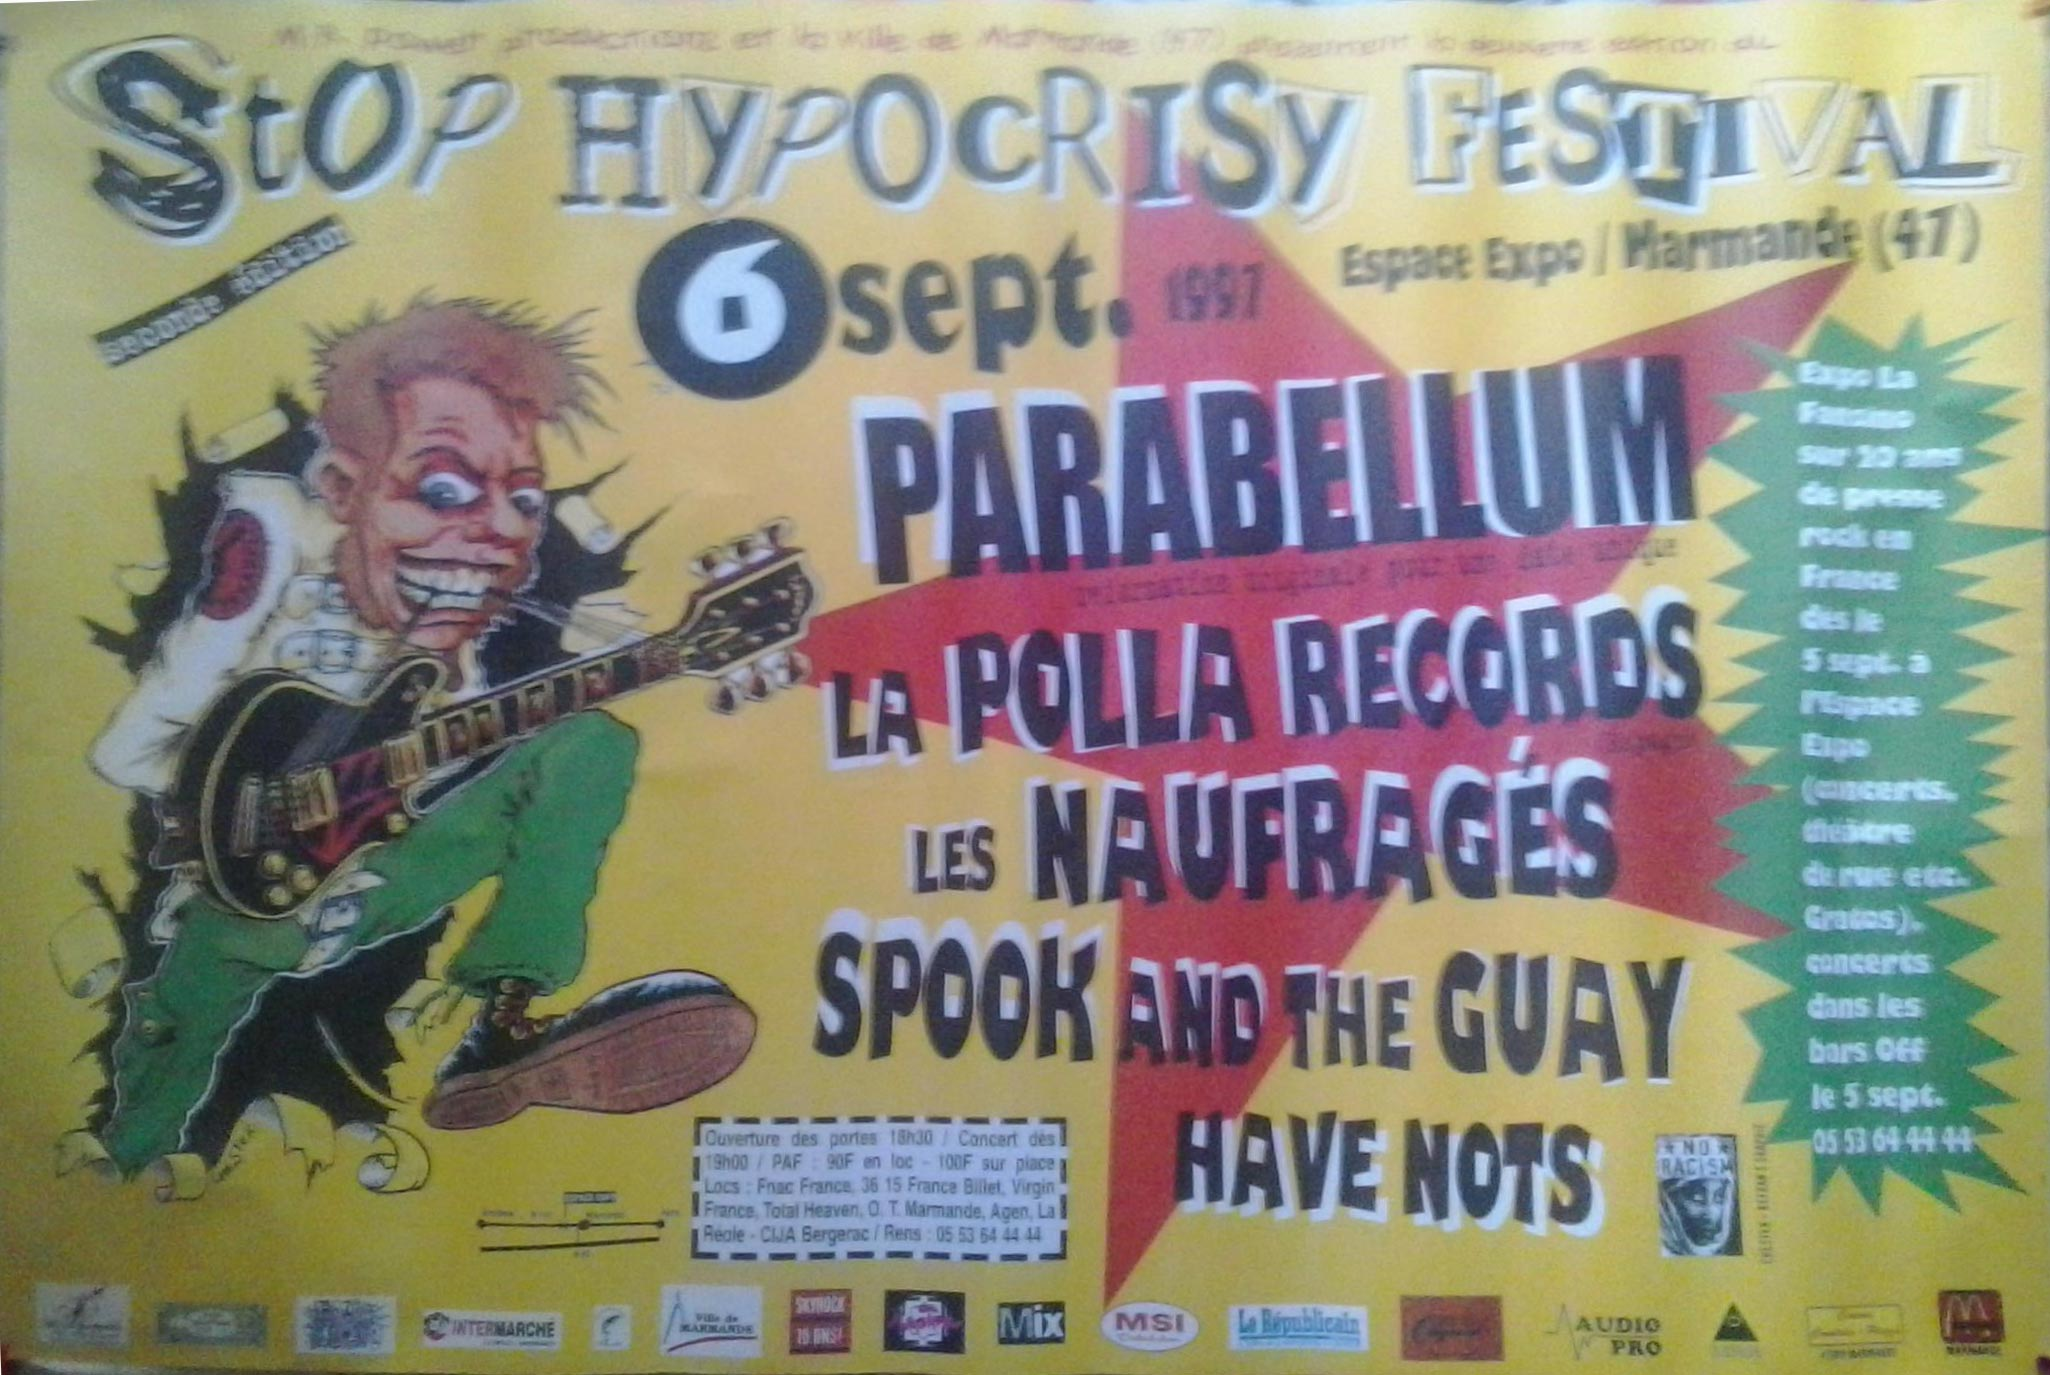 "6 septembre 1997 Parabellum, La Polla Records, les Naufragés, Spook and the Guay, Have Nots à Marmande ""Espcace Expo"""